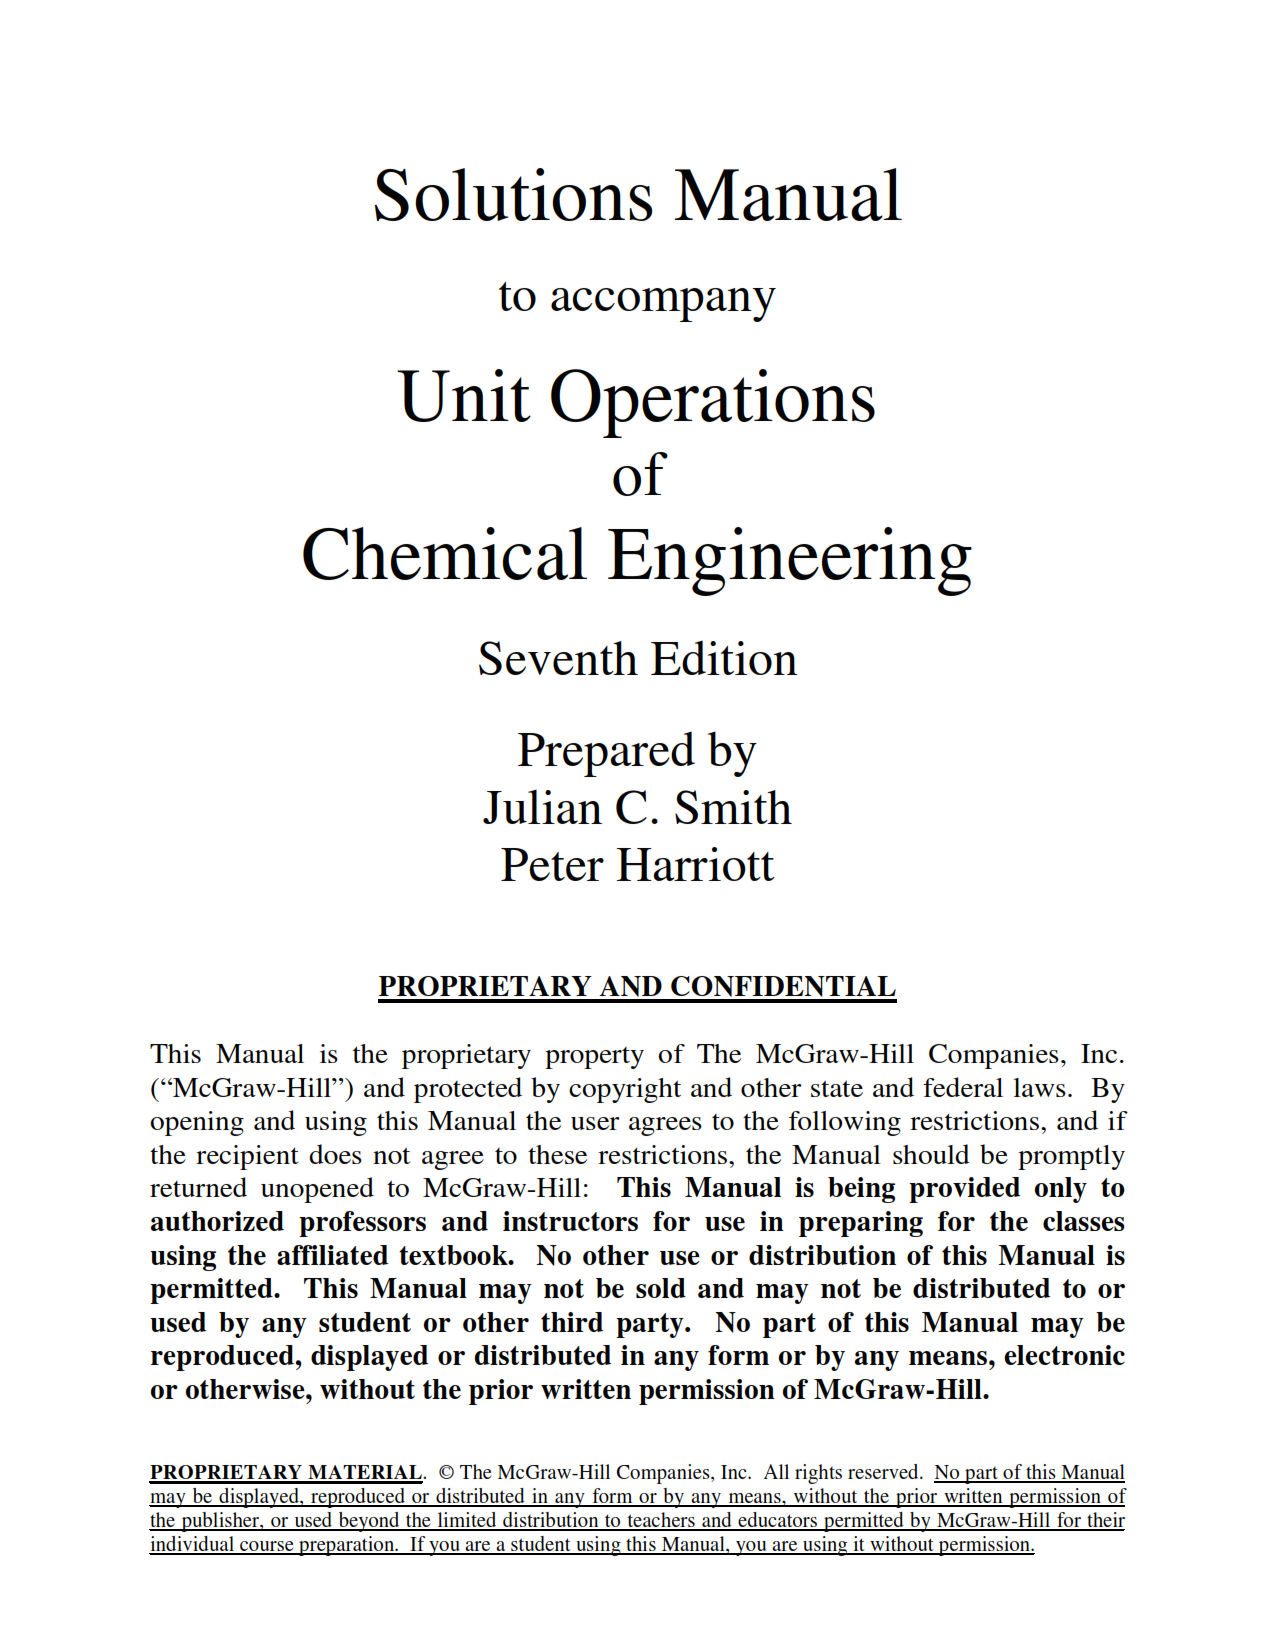 download free solution manual of Unit Operations of Chemical Engineering 7th edition by Julin Smith book in pdf format